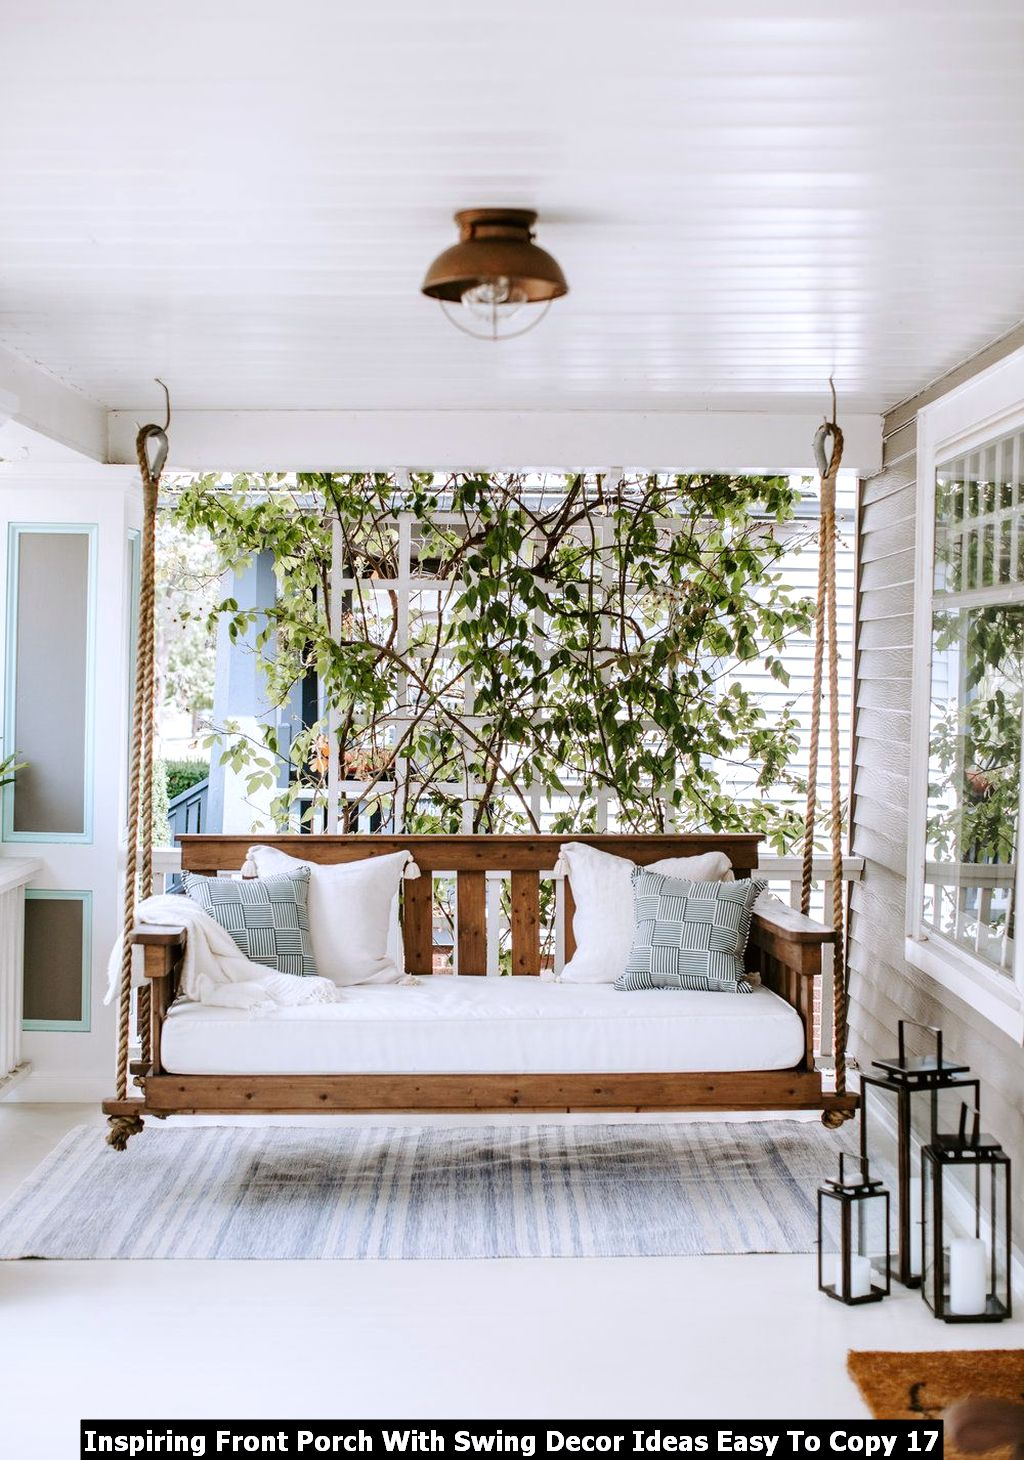 Inspiring Front Porch With Swing Decor Ideas Easy To Copy 17